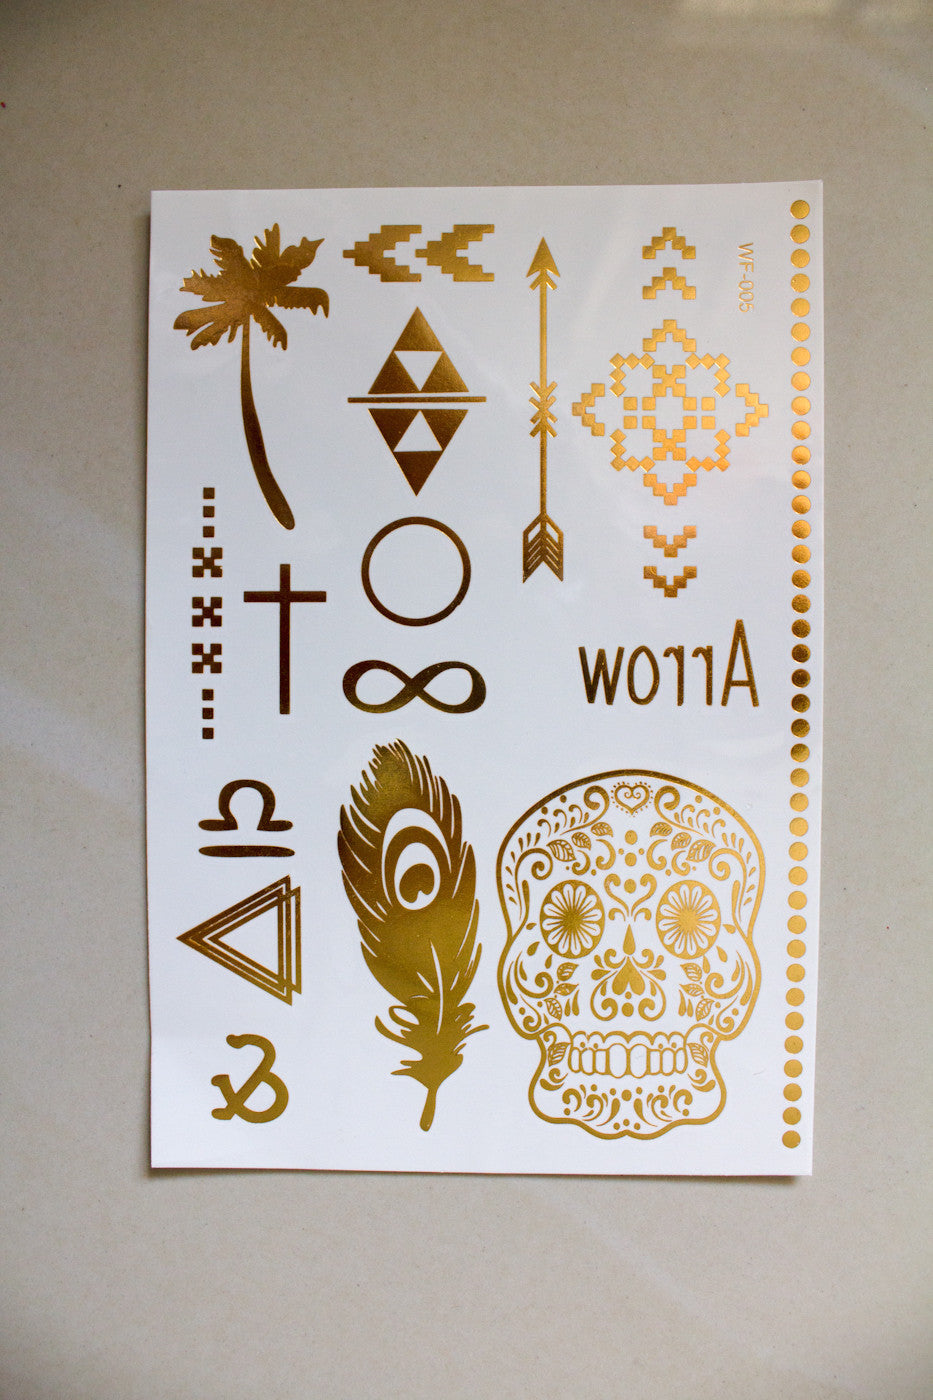 Metallic Temporary Tattoos - kalei - Peep Boutique - www.peepb.com - 9